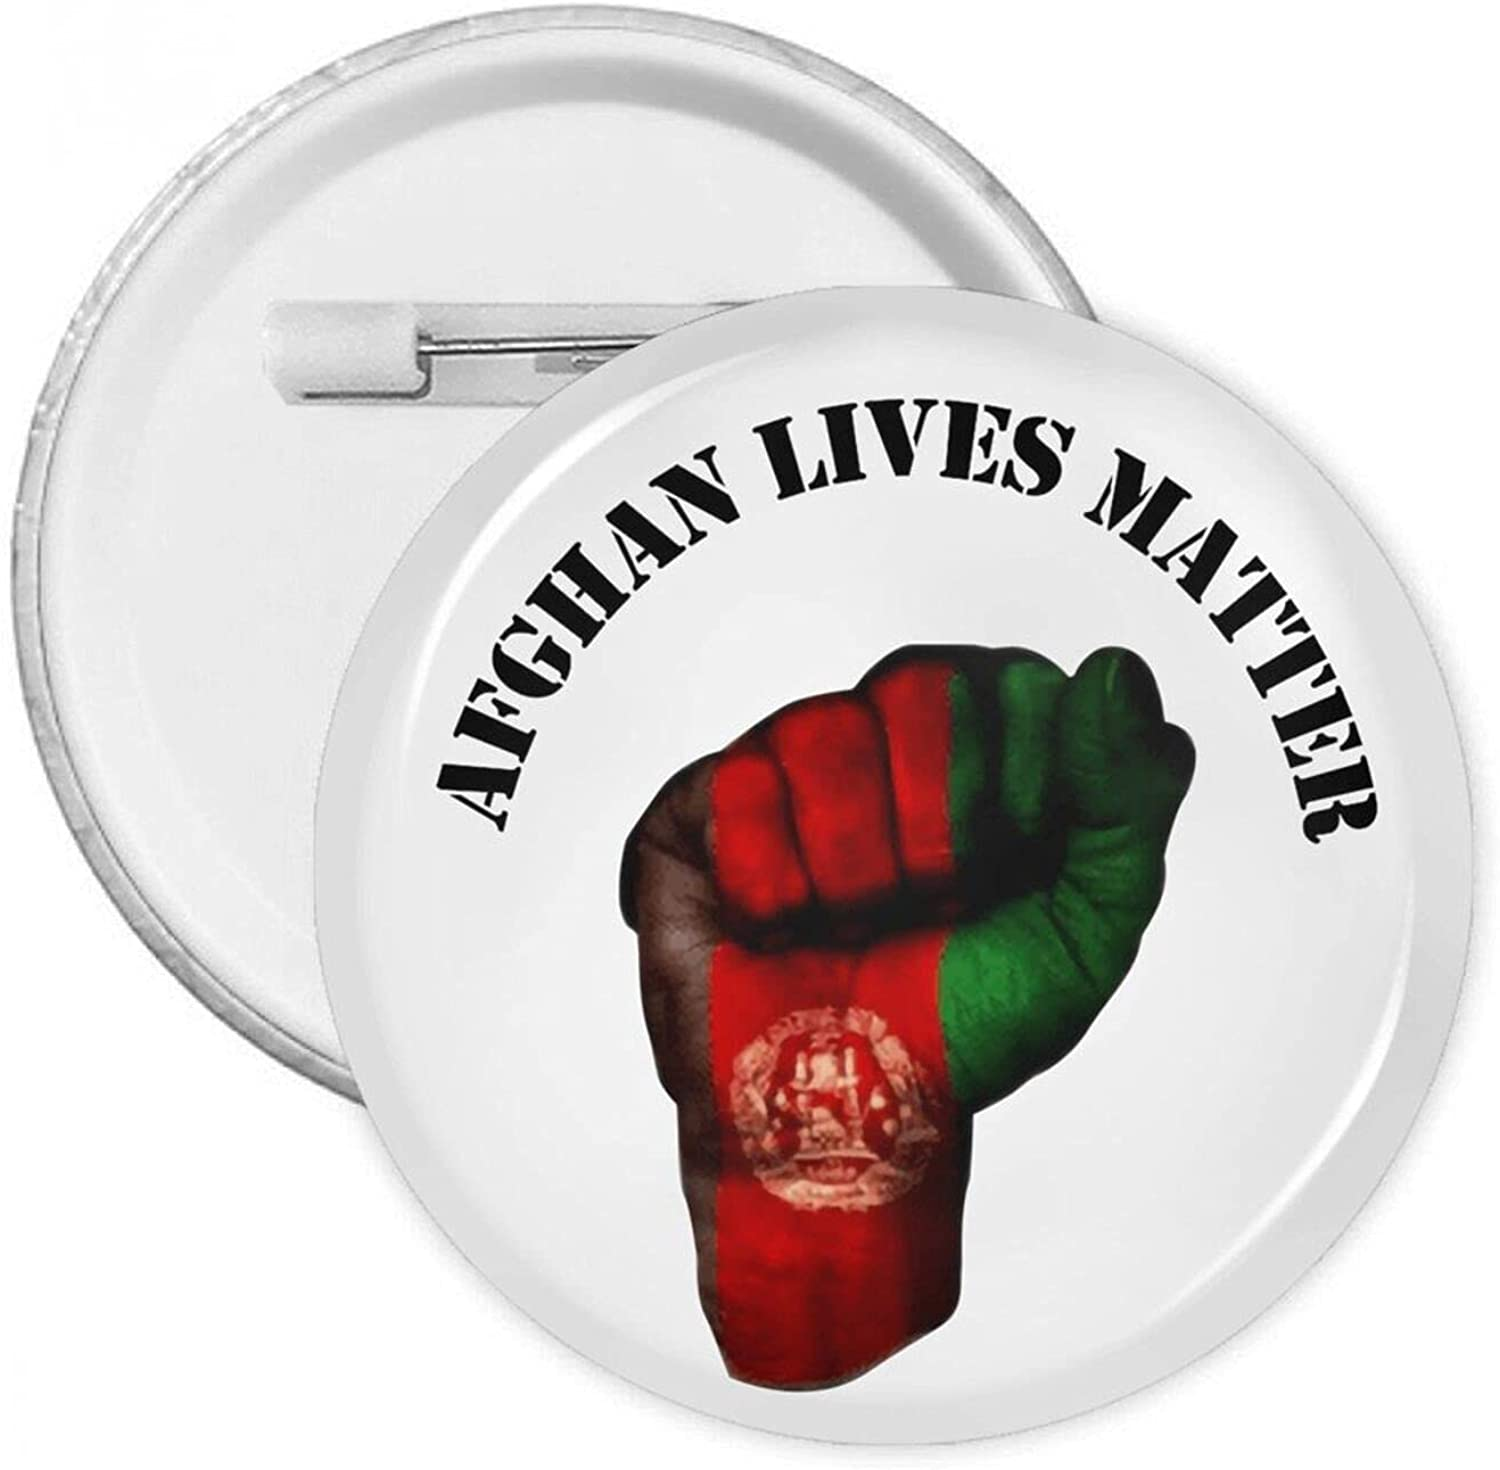 Afghan Lives Matter Round Pins Button Under Max 44% OFF blast sales Badges With